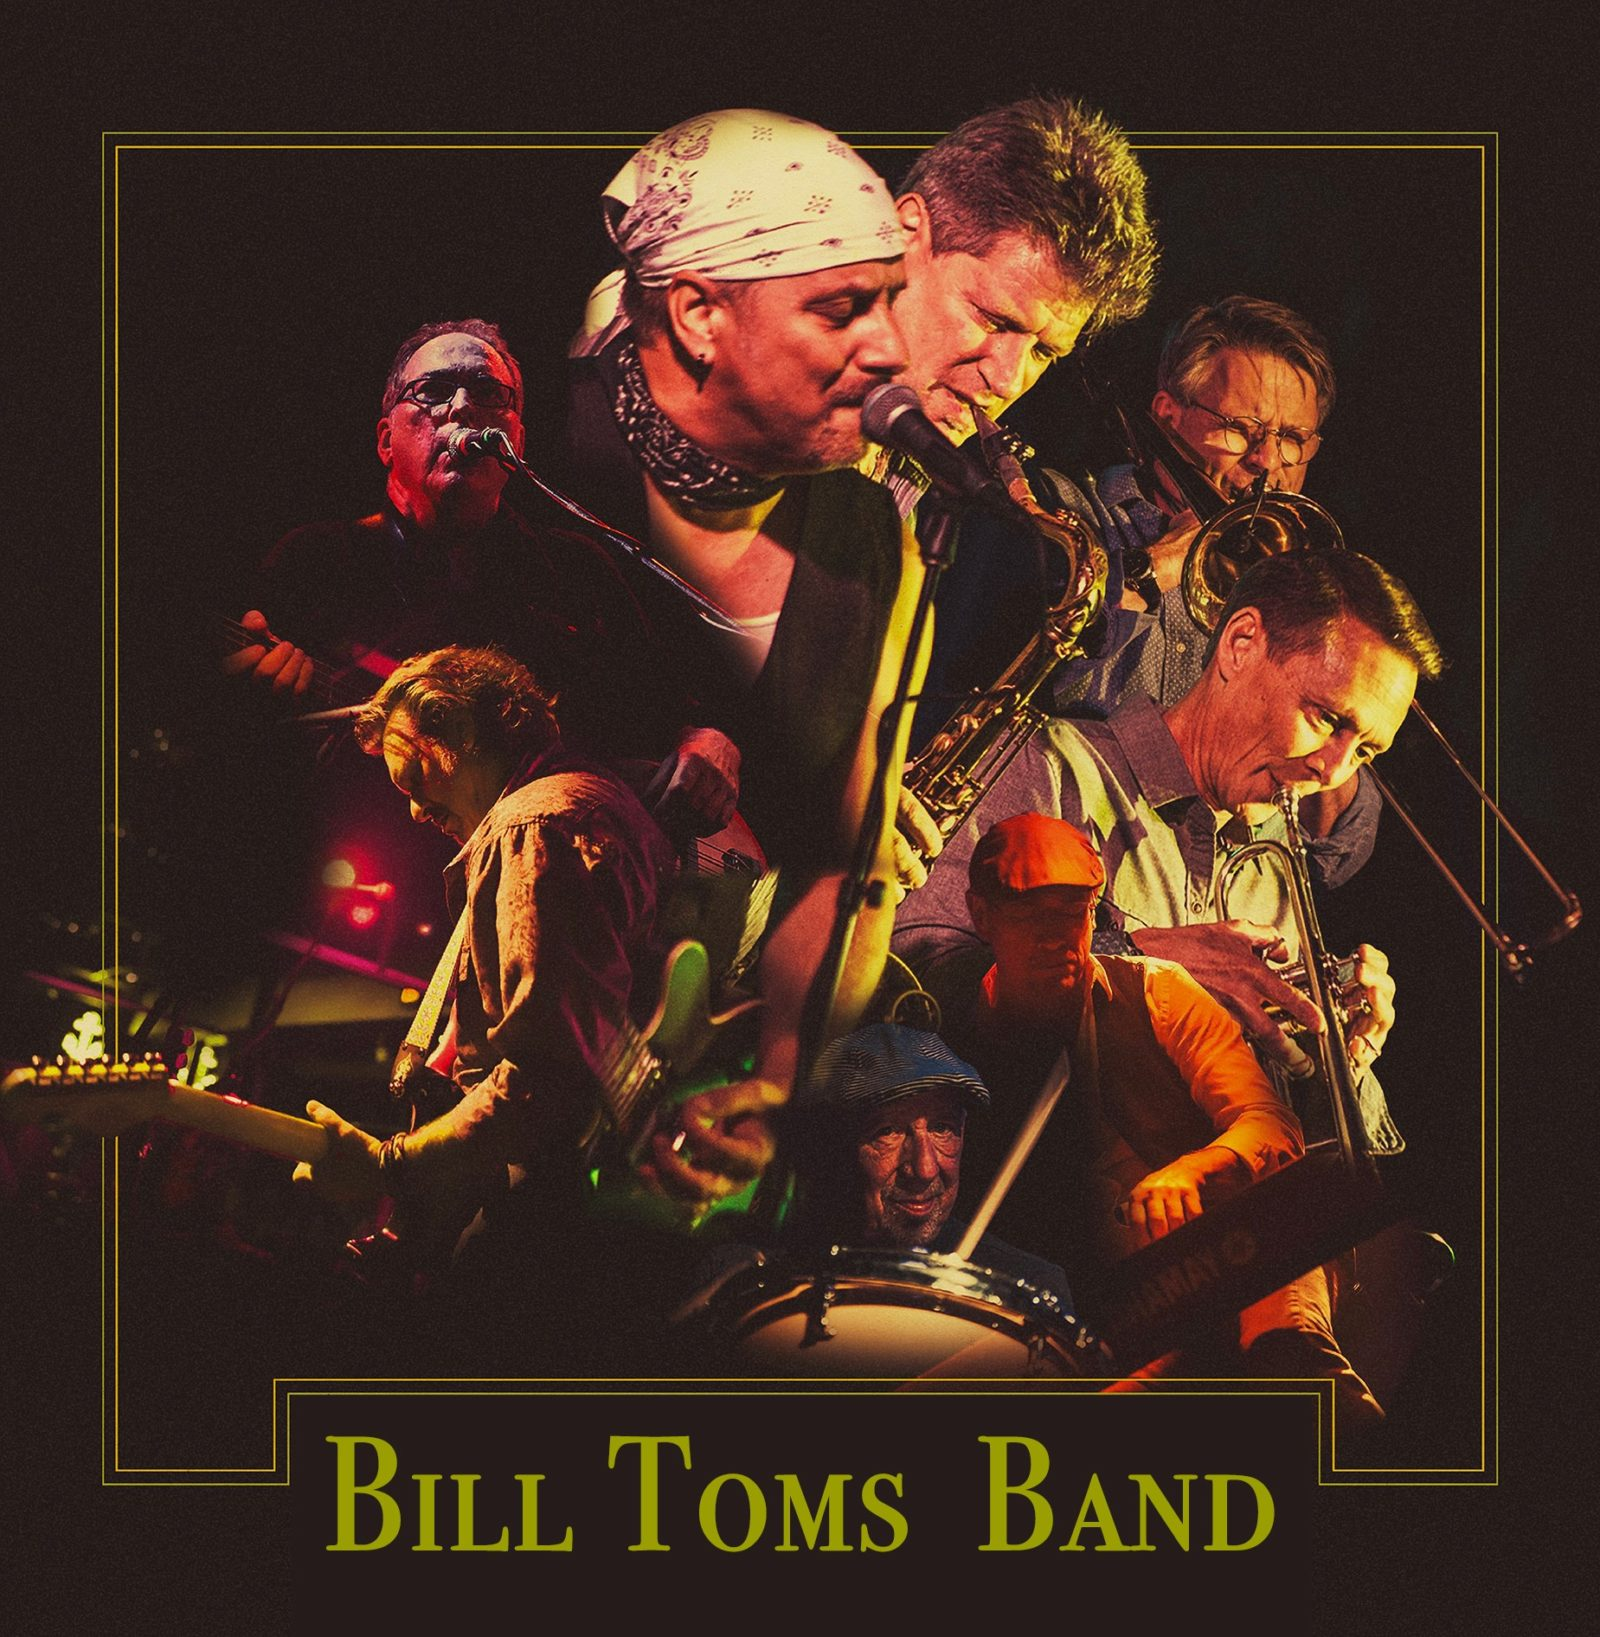 Bill Toms Band